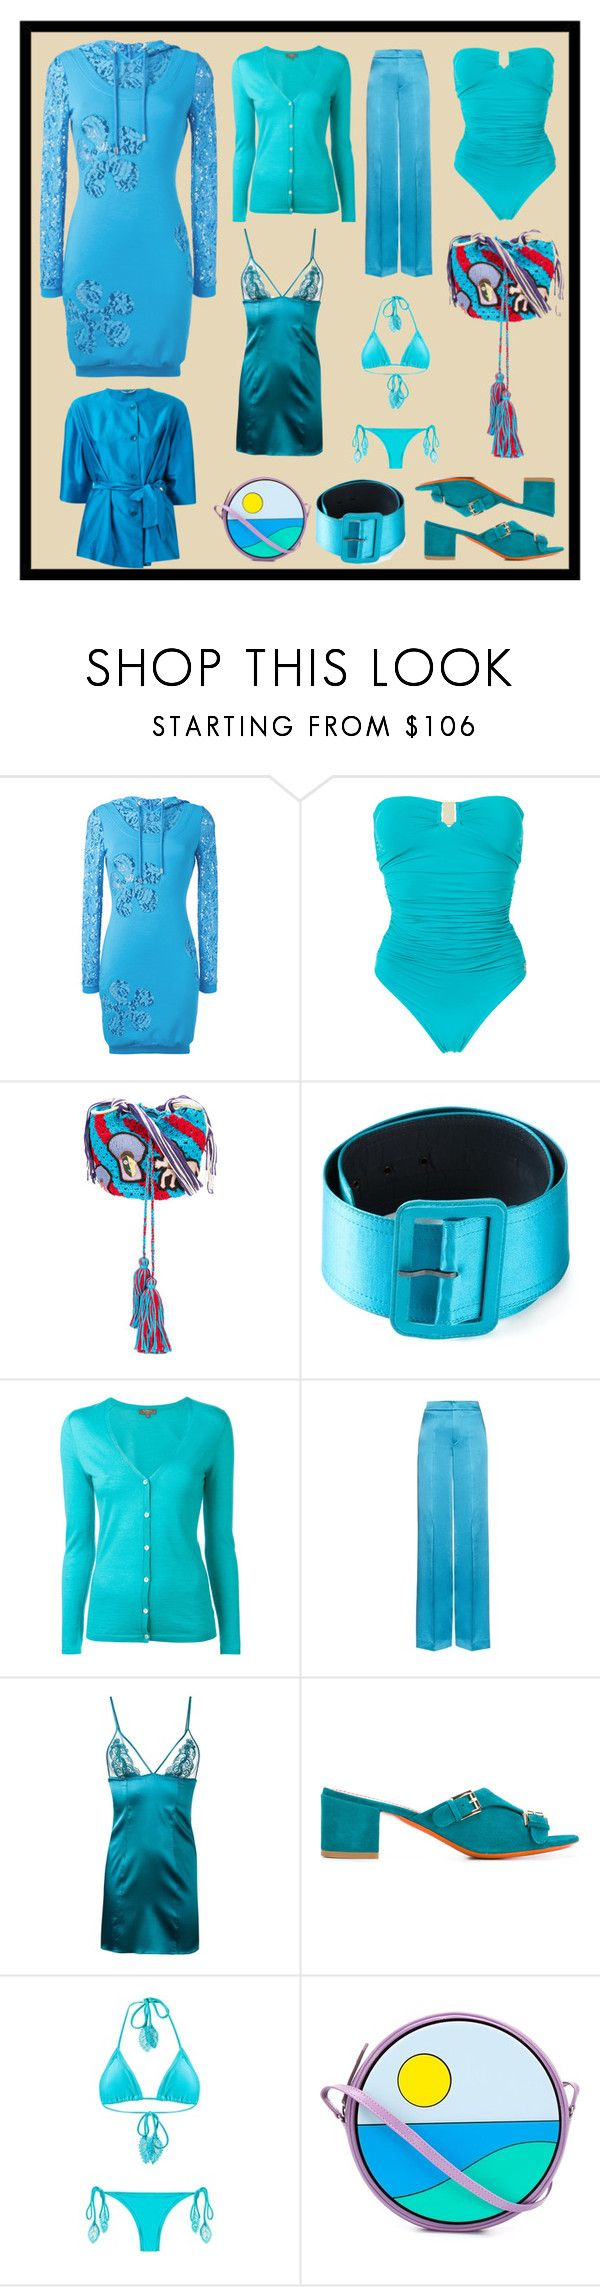 """""""Sky Blue"""" by cate-jennifer ❤ liked on Polyvore featuring Moschino, Brigitte, Peter Pilotto, Yves Saint Laurent, N.Peal, Etro, Fleur of England, Santoni, Martha Medeiros and Yazbukey"""